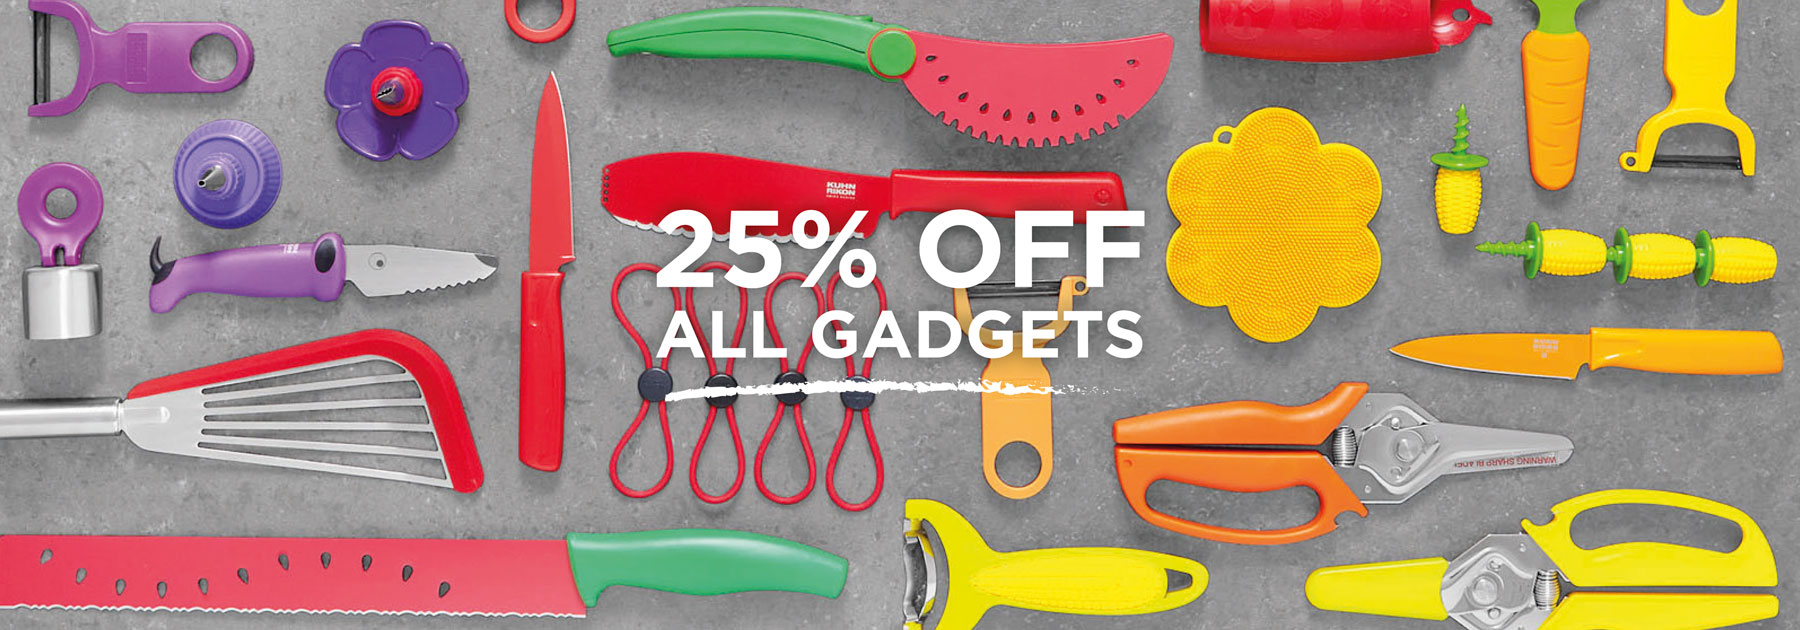 25% OFF, Tools & Gadgets, sale, promotions